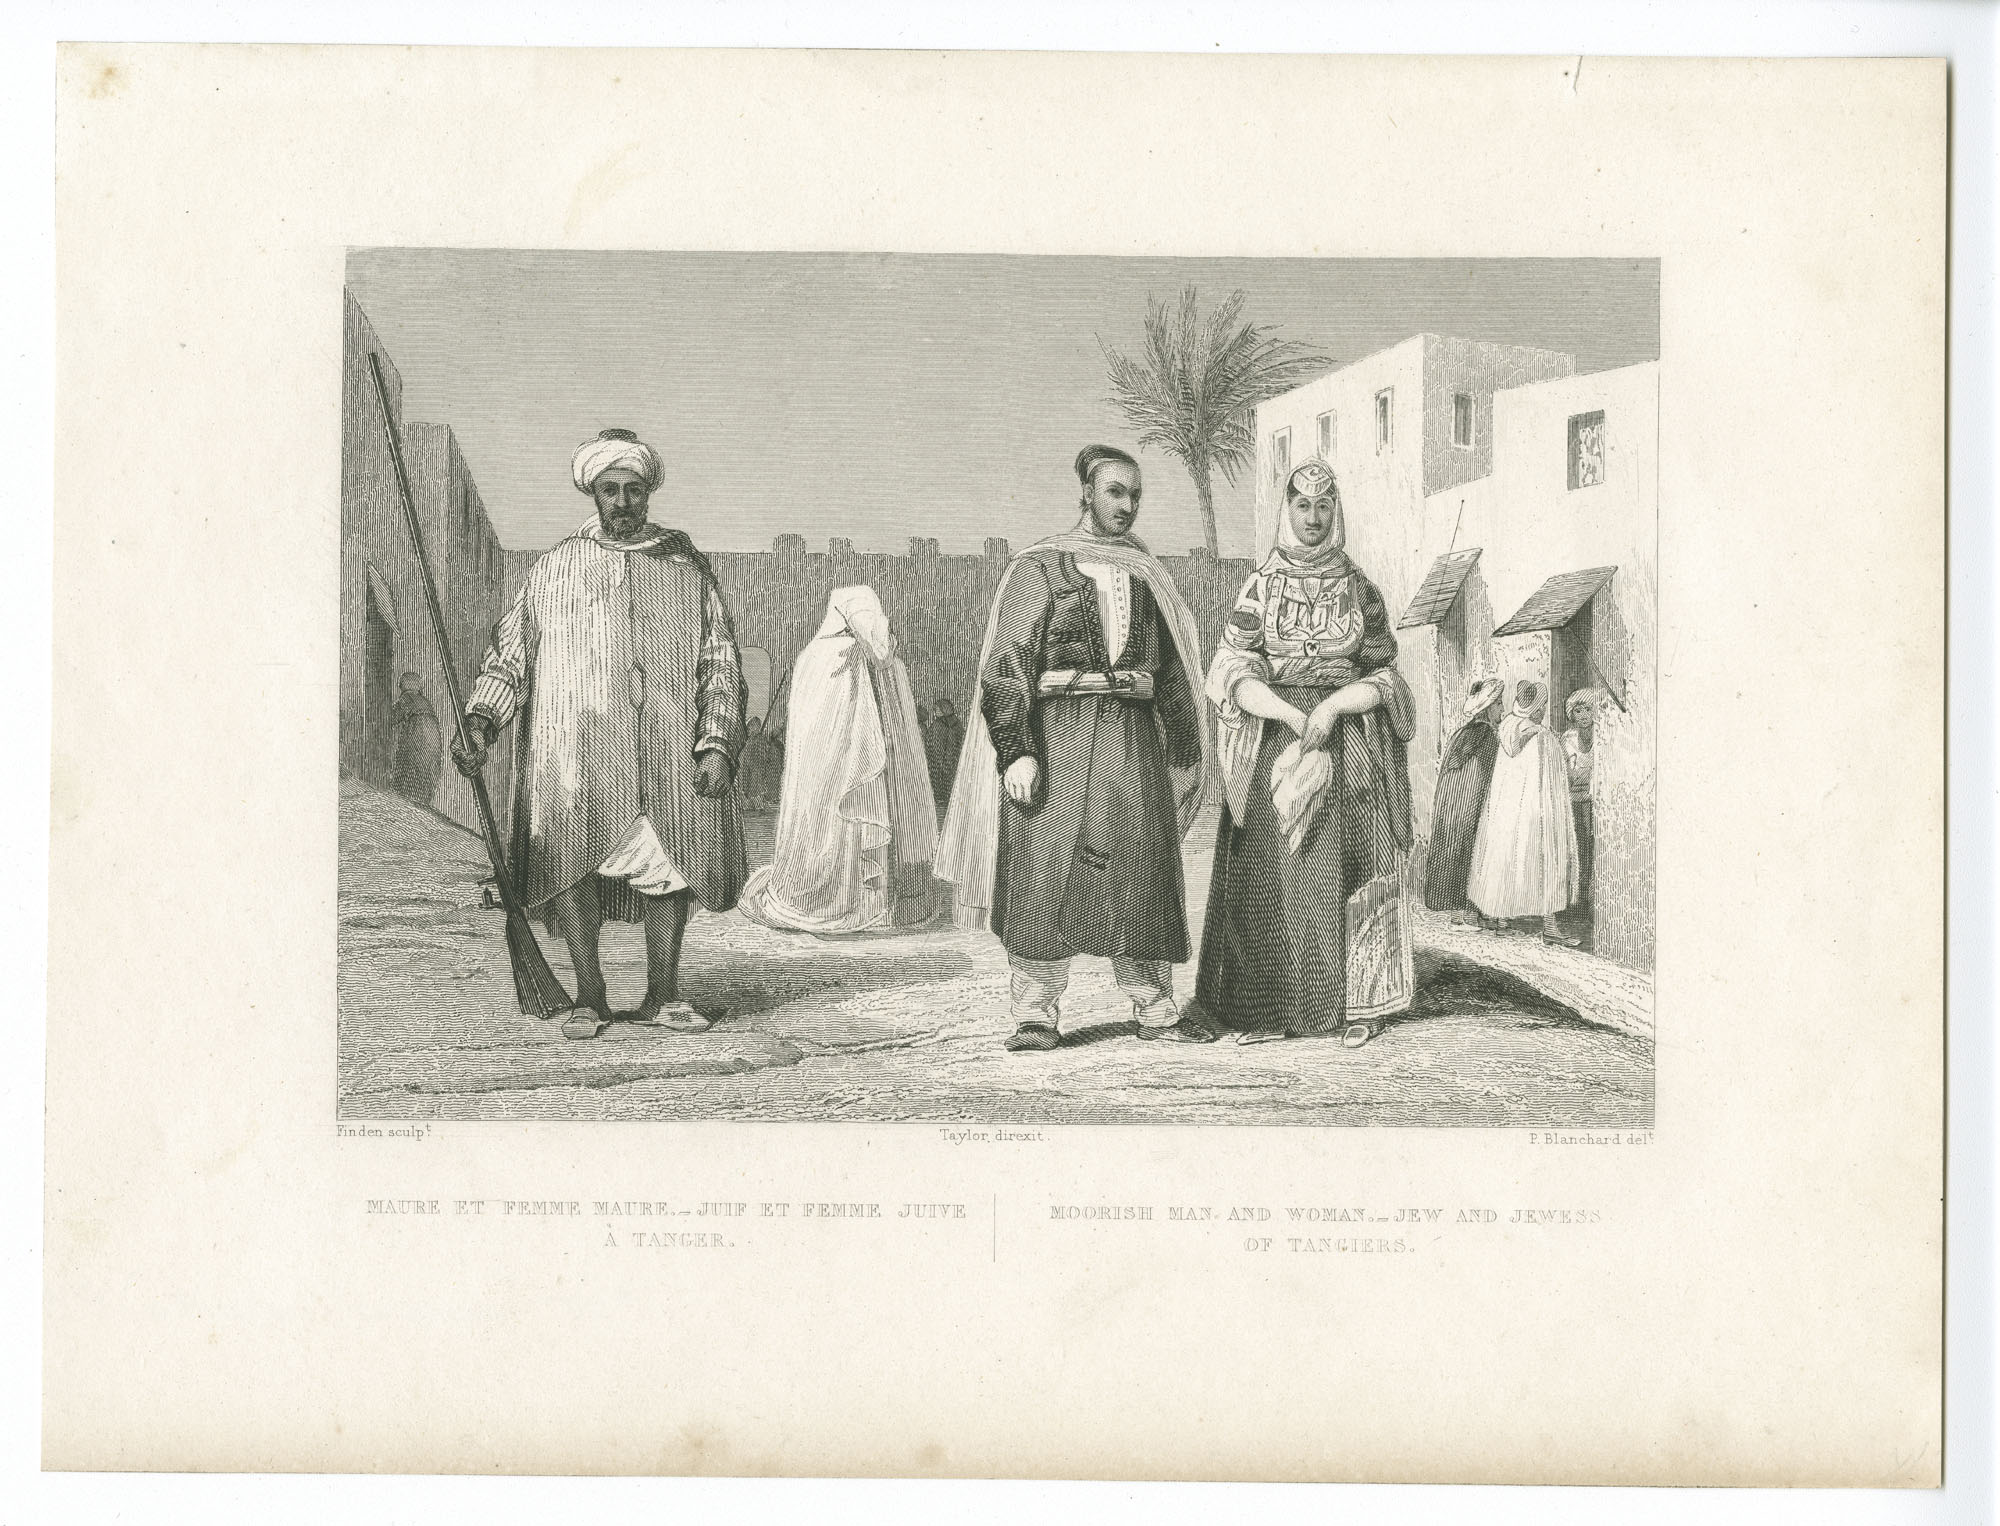 Maure et femme maure - Juif et femme juive à Tanger / Moorish  man and woman - Jew and Jewess of Tangiers